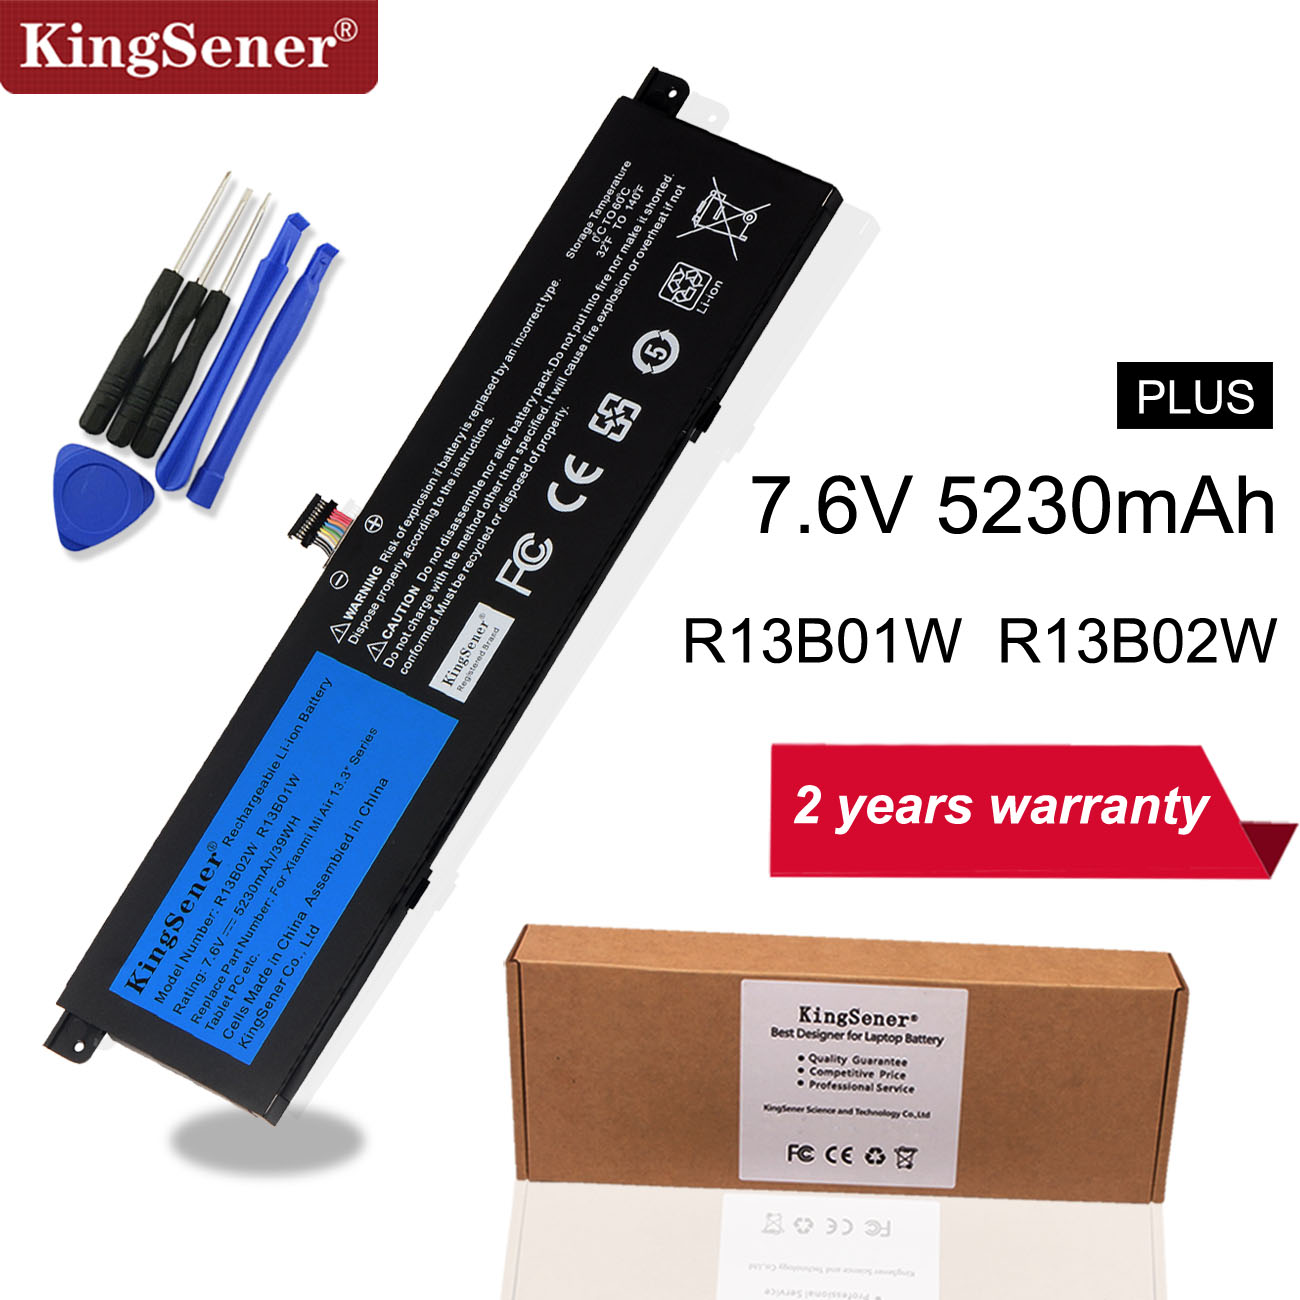 "Kingsener 7.6V 5230mAh New R13B01W R13B02W Laptop Battery For Xiaomi Mi Air 13.3"" Series Tablet PC 39WH-in Laptop Batteries from Computer & Office"